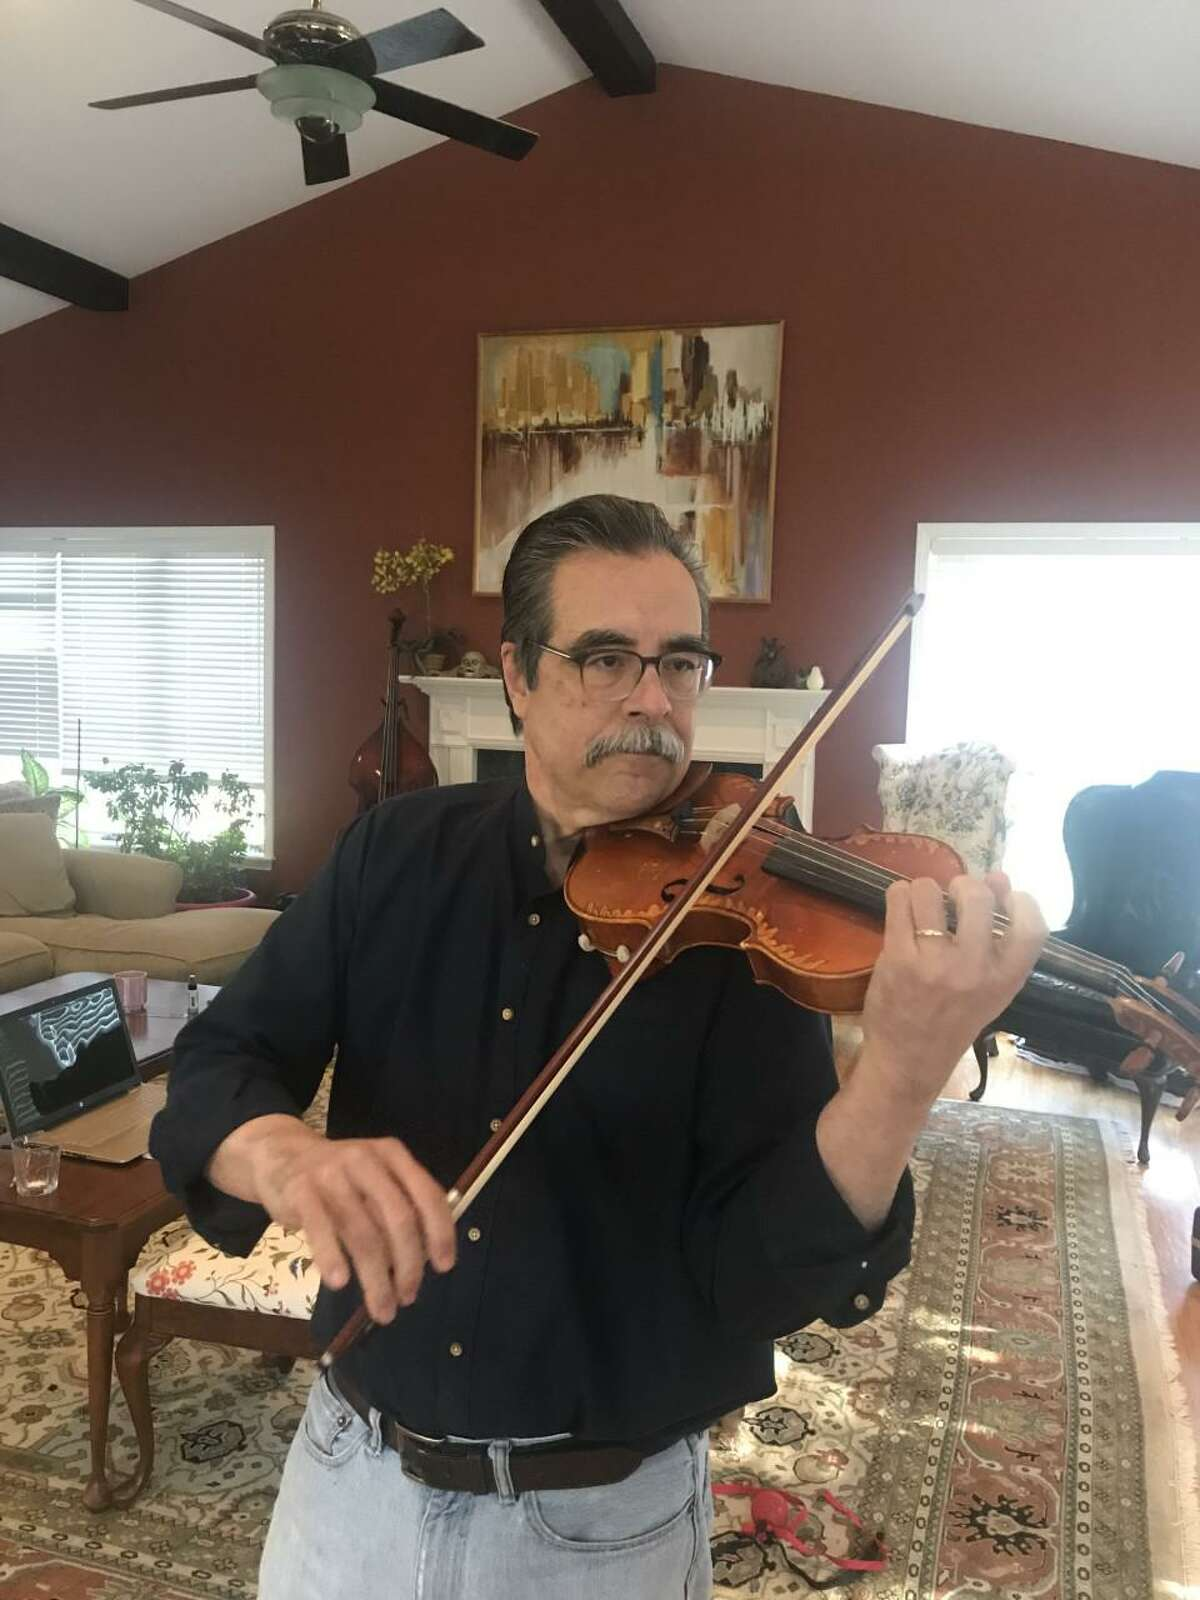 Mac Johnston plays the violin in his living room in Wilton.